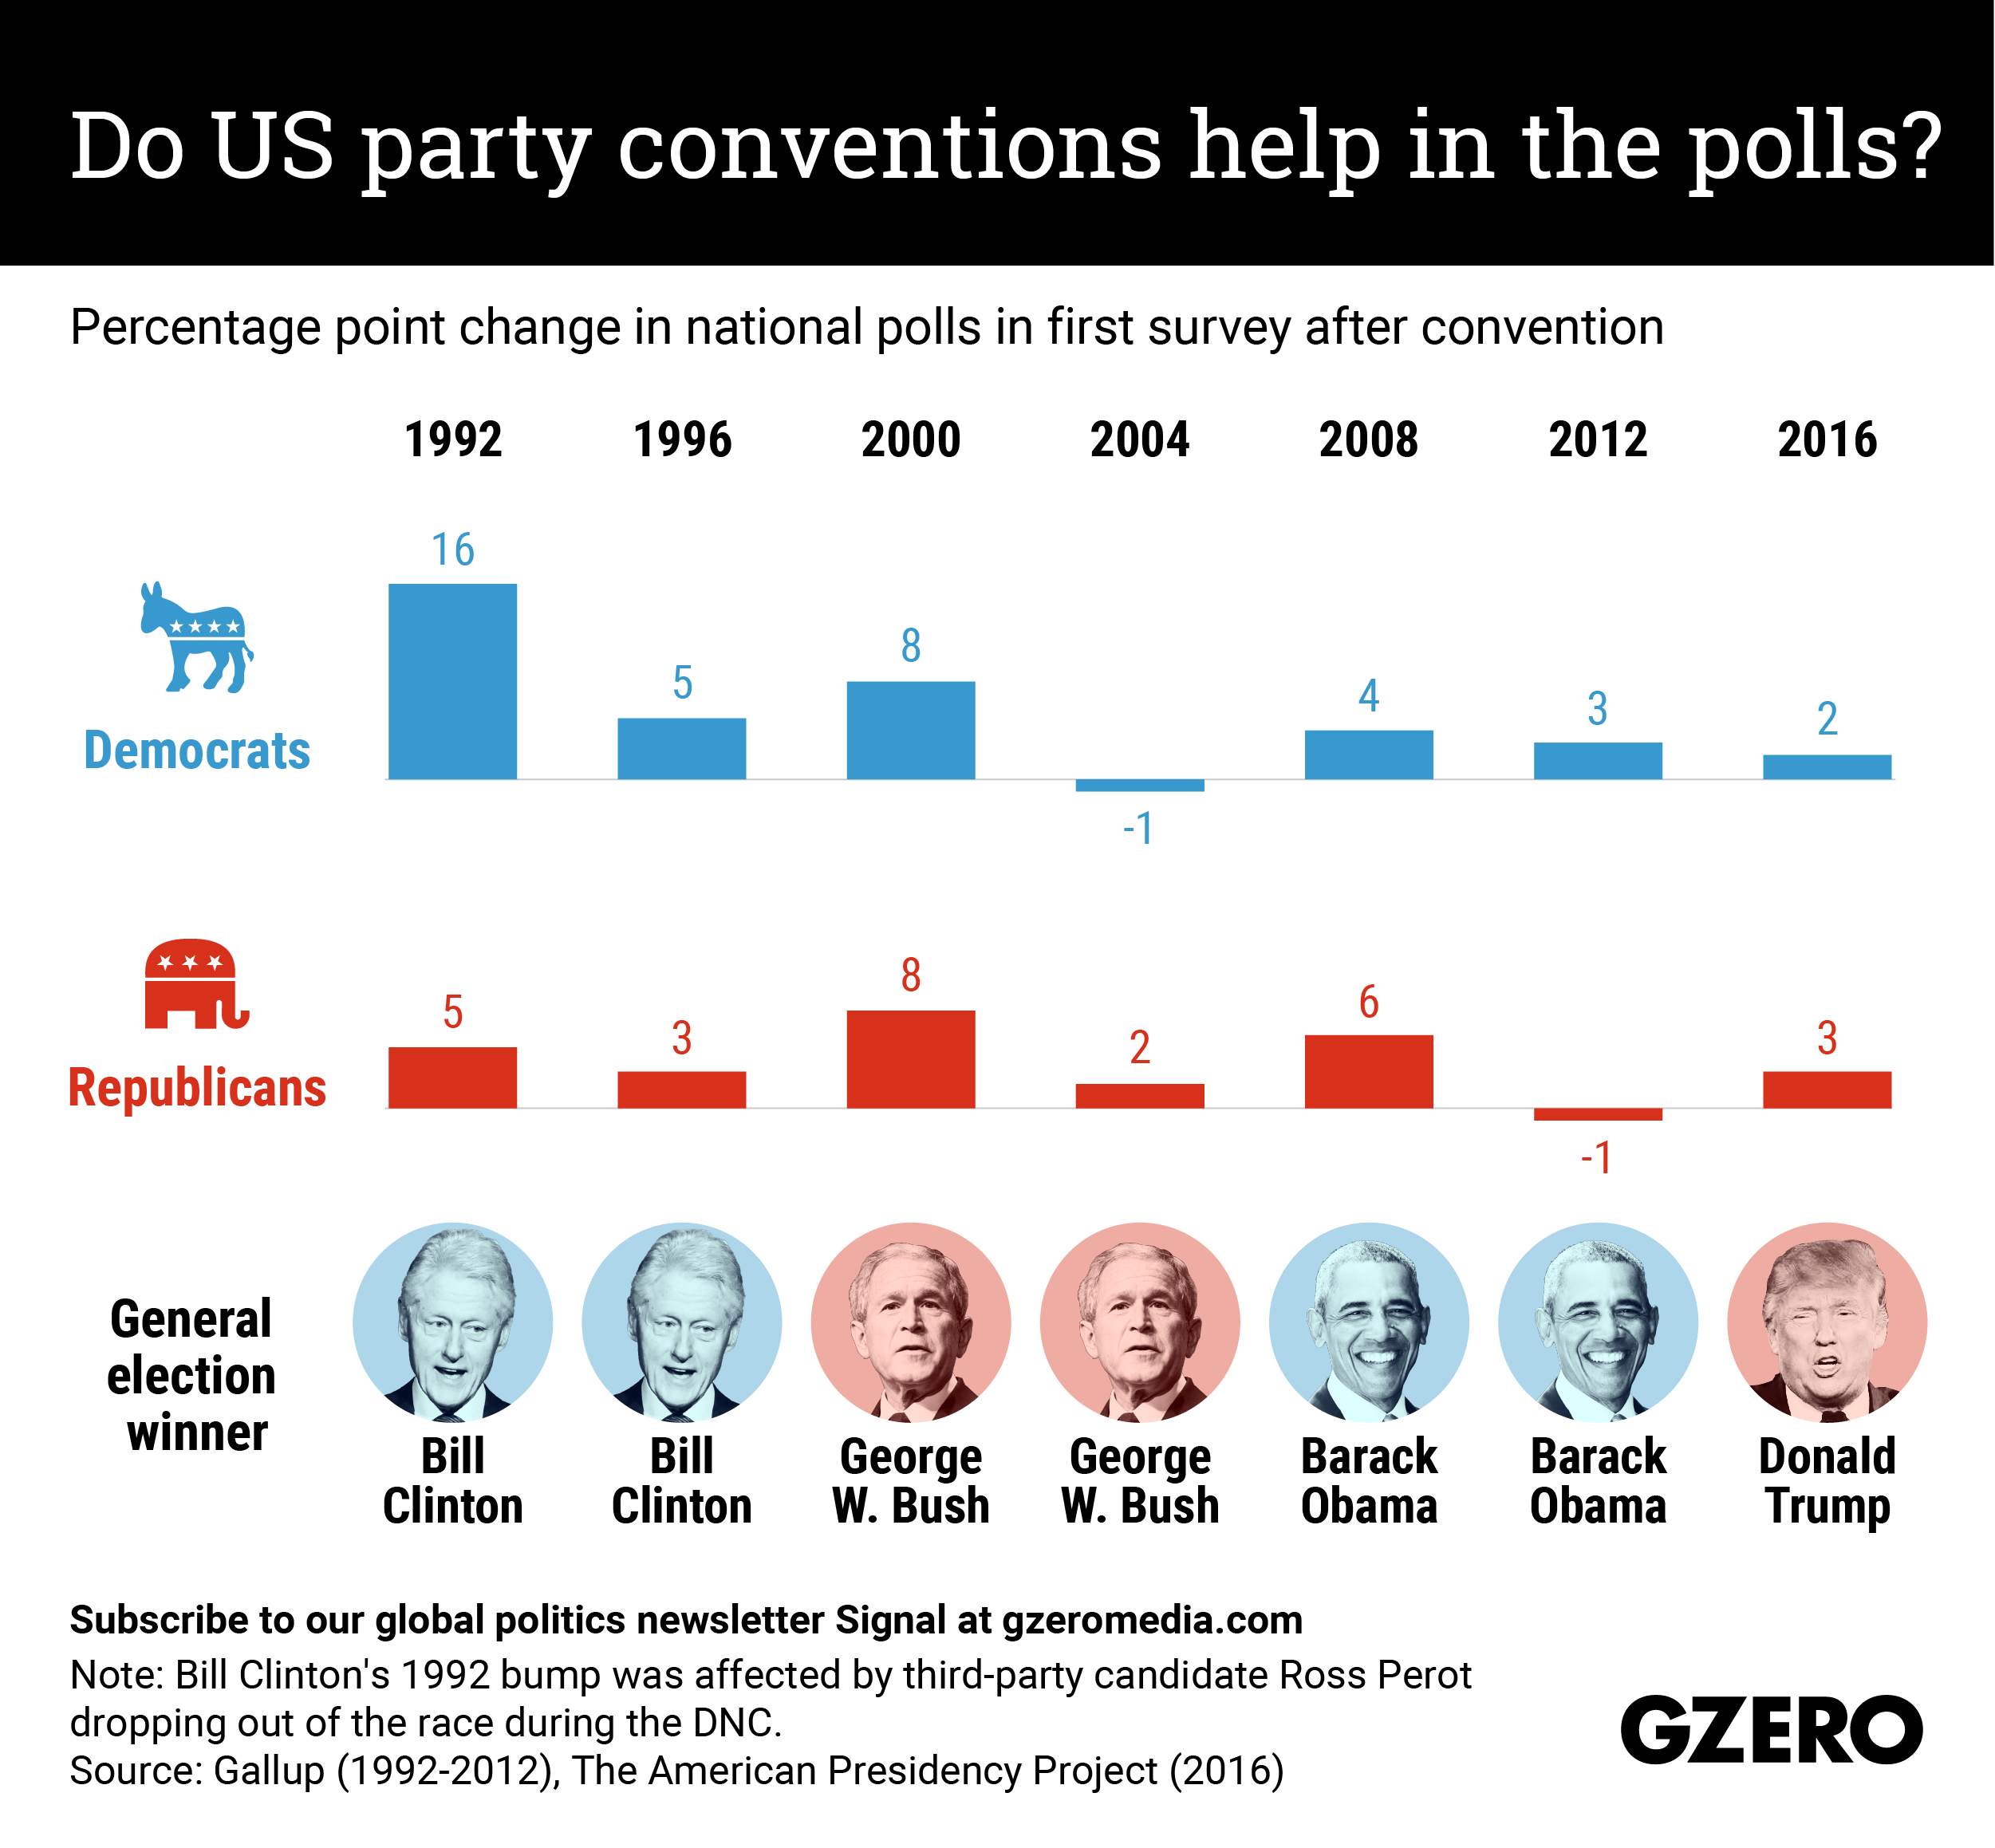 The Graphic Truth: Do US party conventions help in the polls?